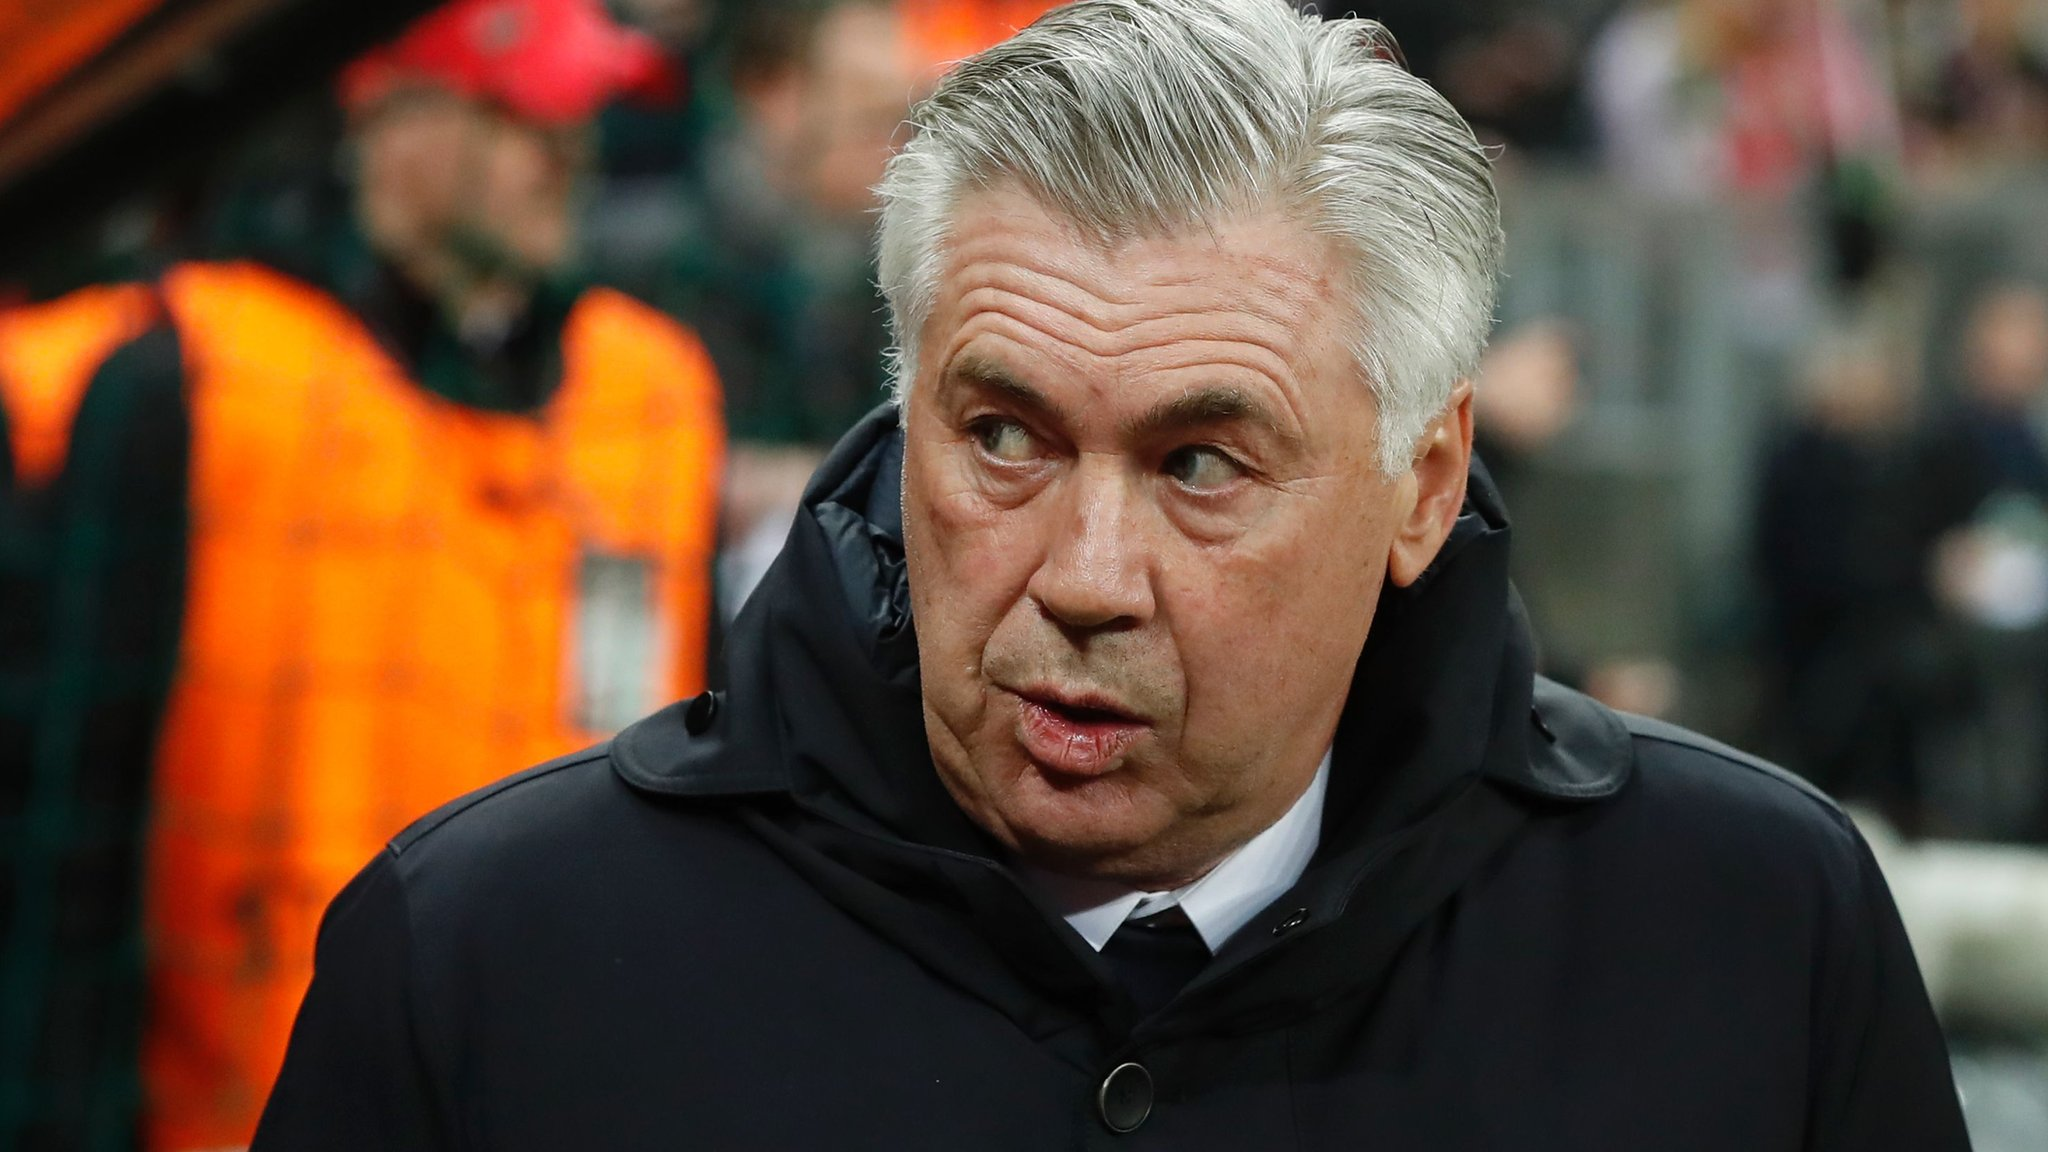 Carlo Ancelotti: Bayern Munich boss not punished for middle finger gesture